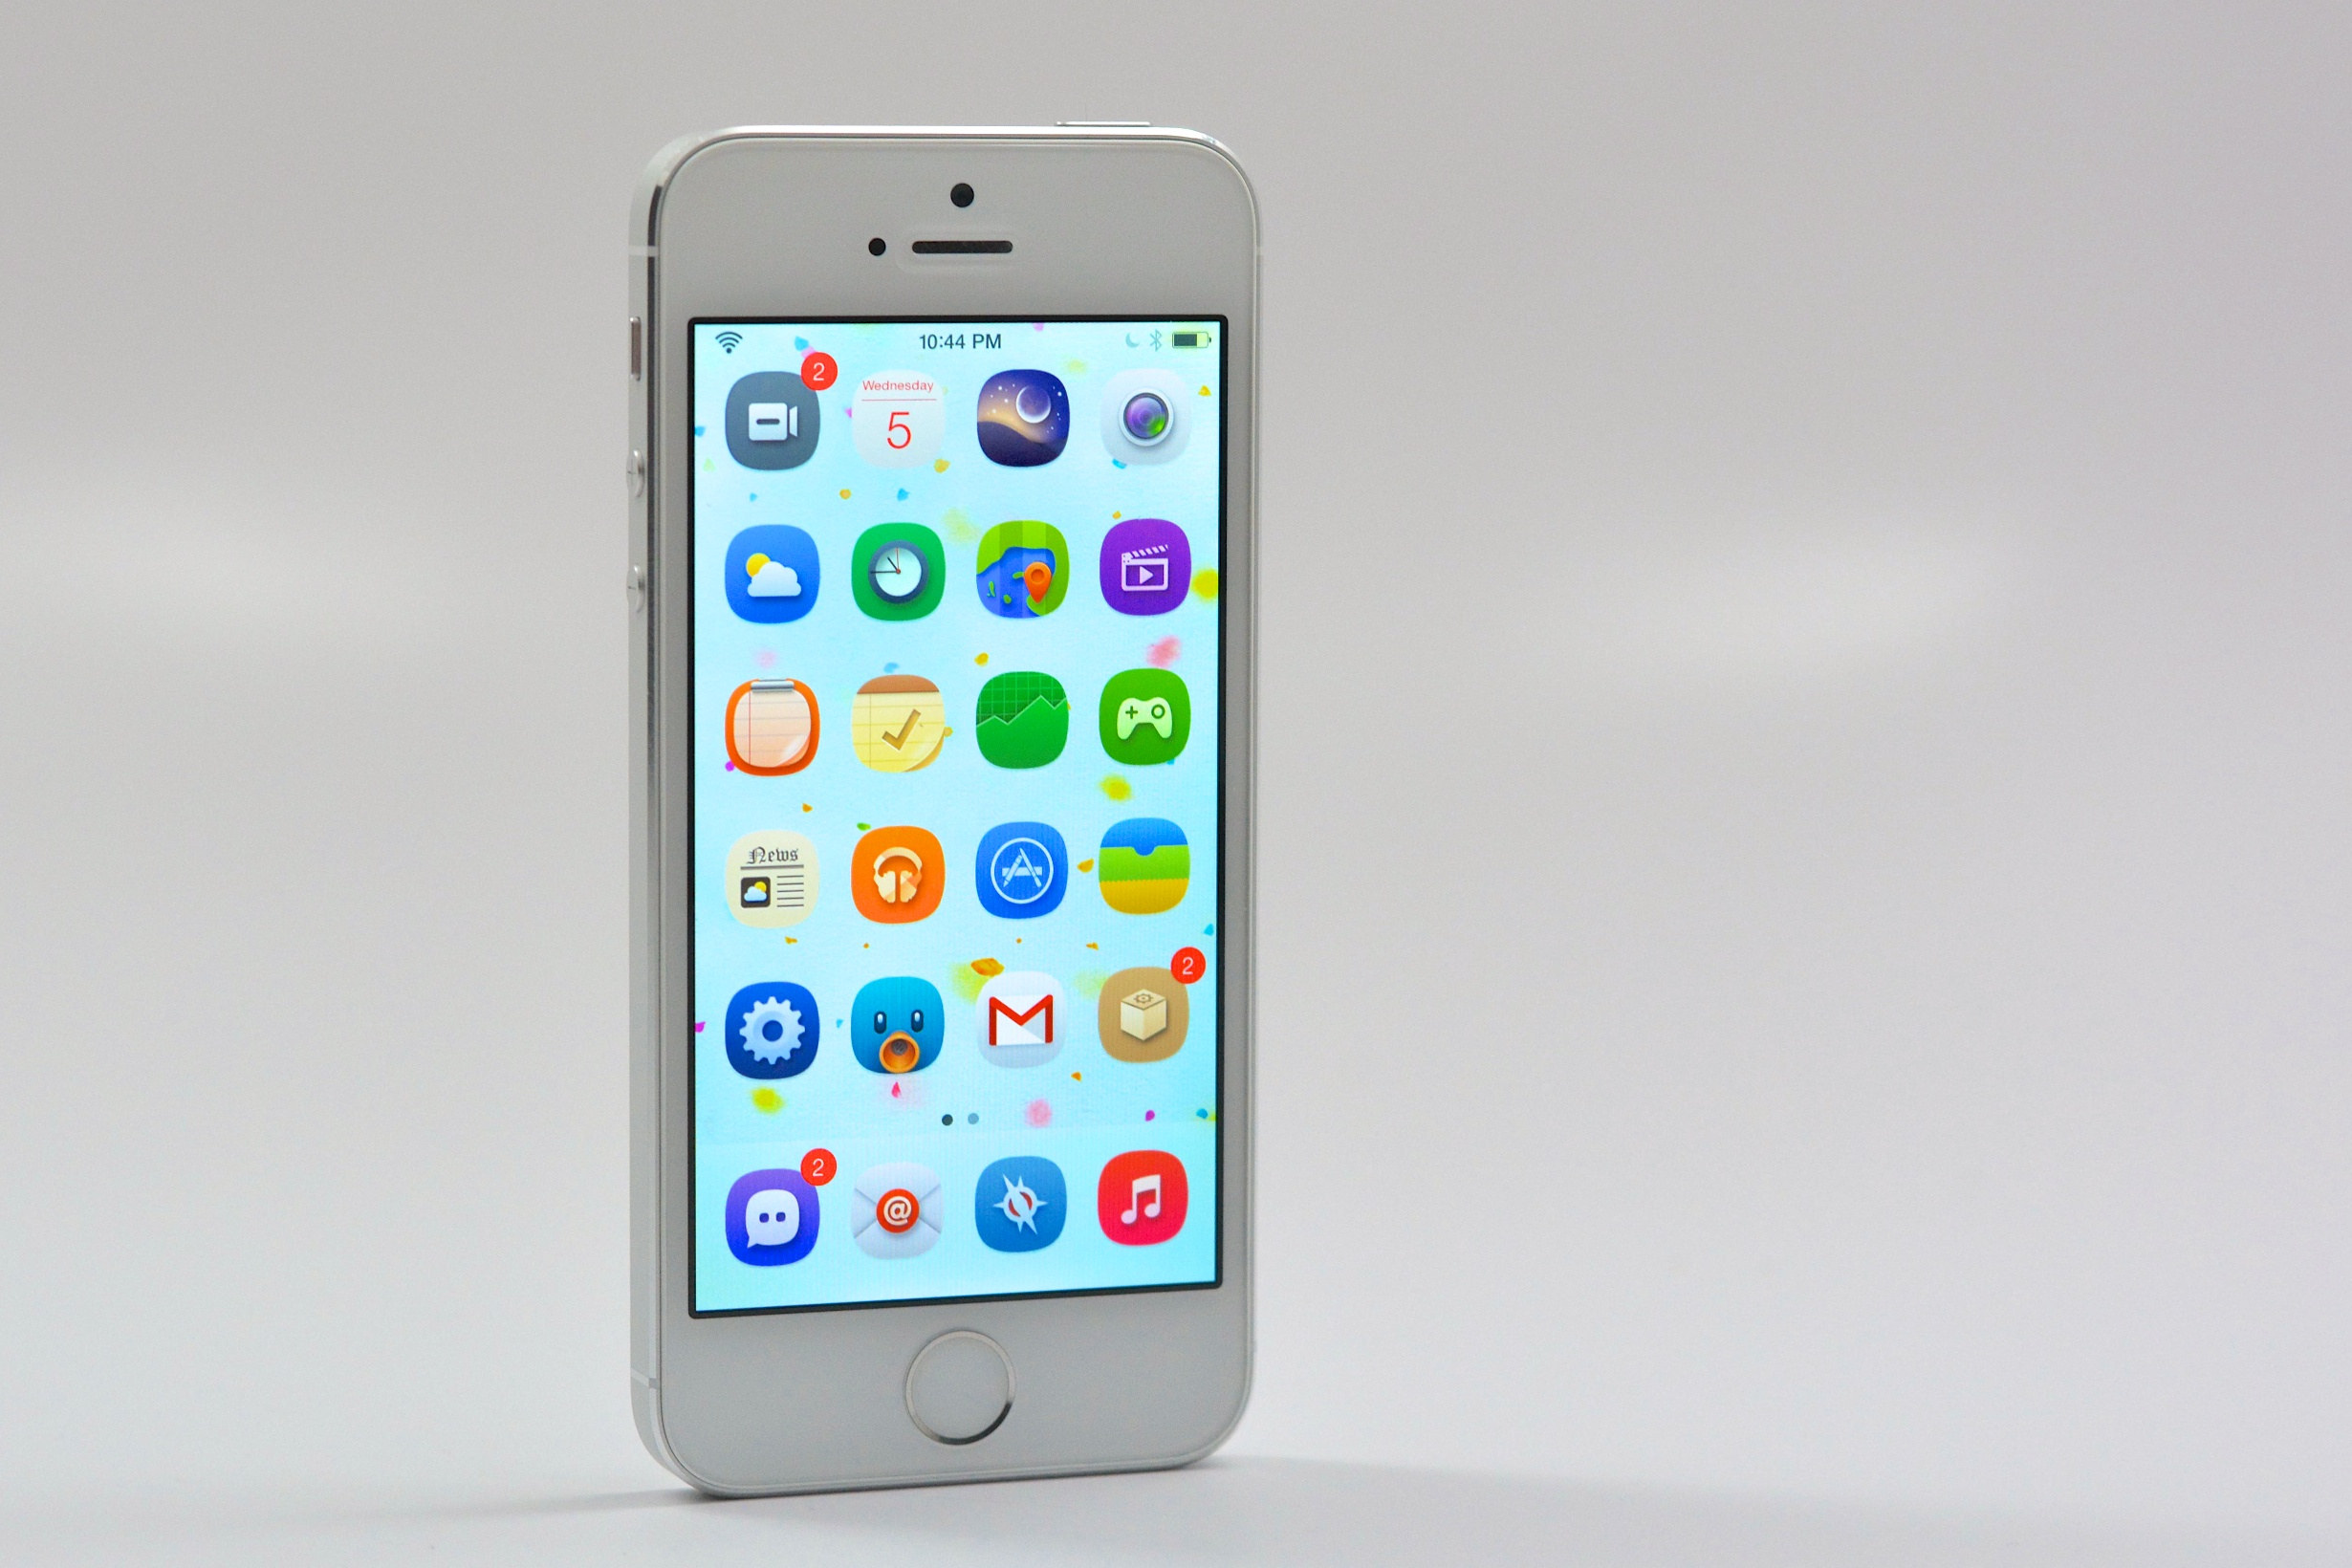 Users need to jailbreak for iOS customization options.